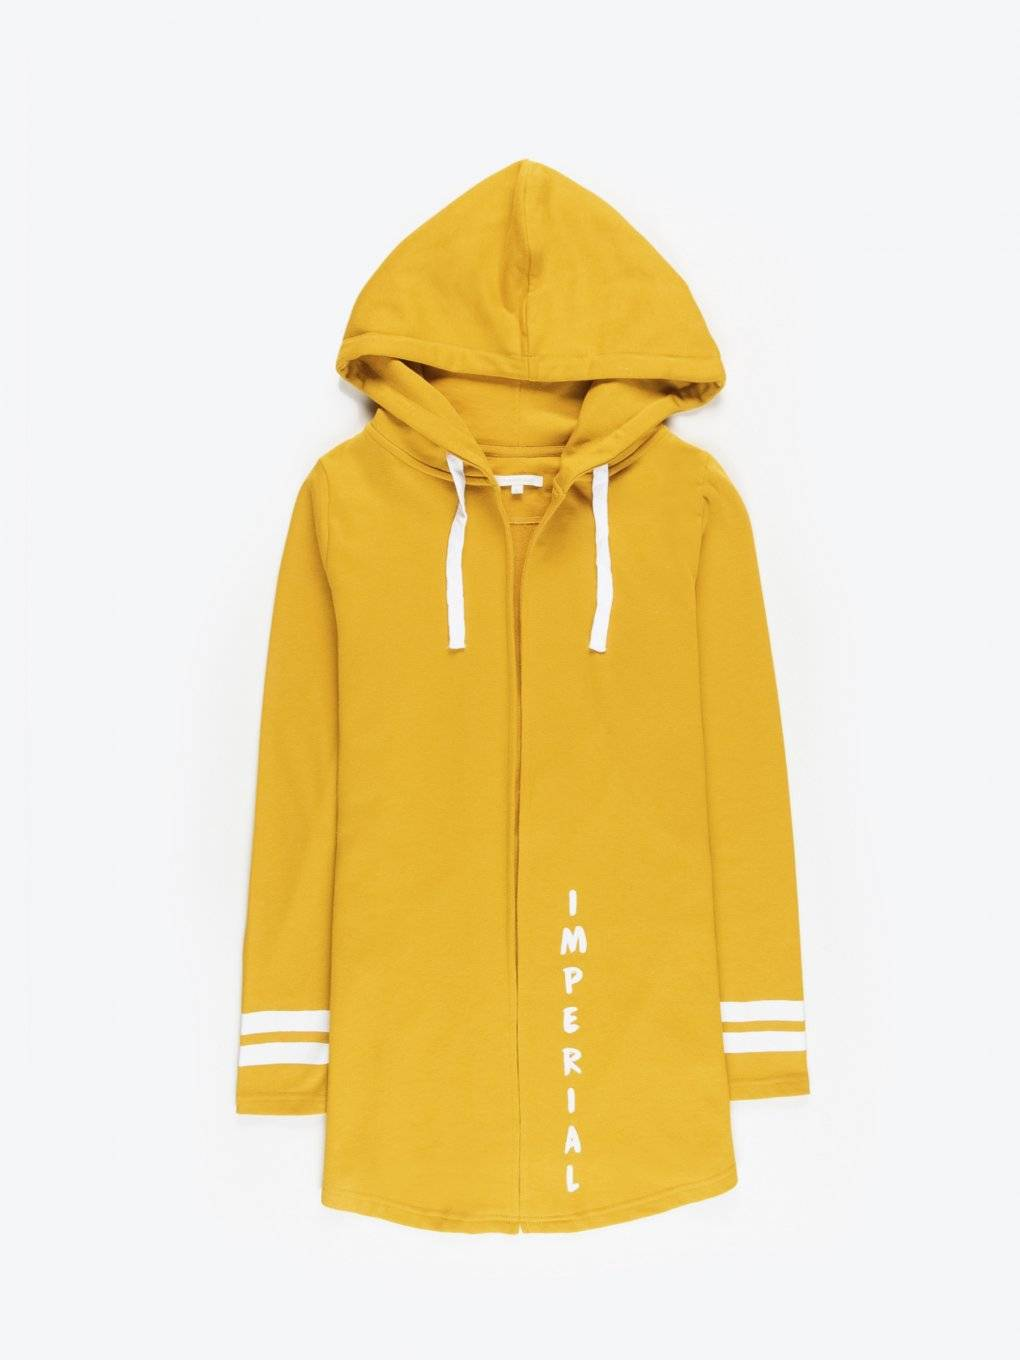 Longline hoody with message print